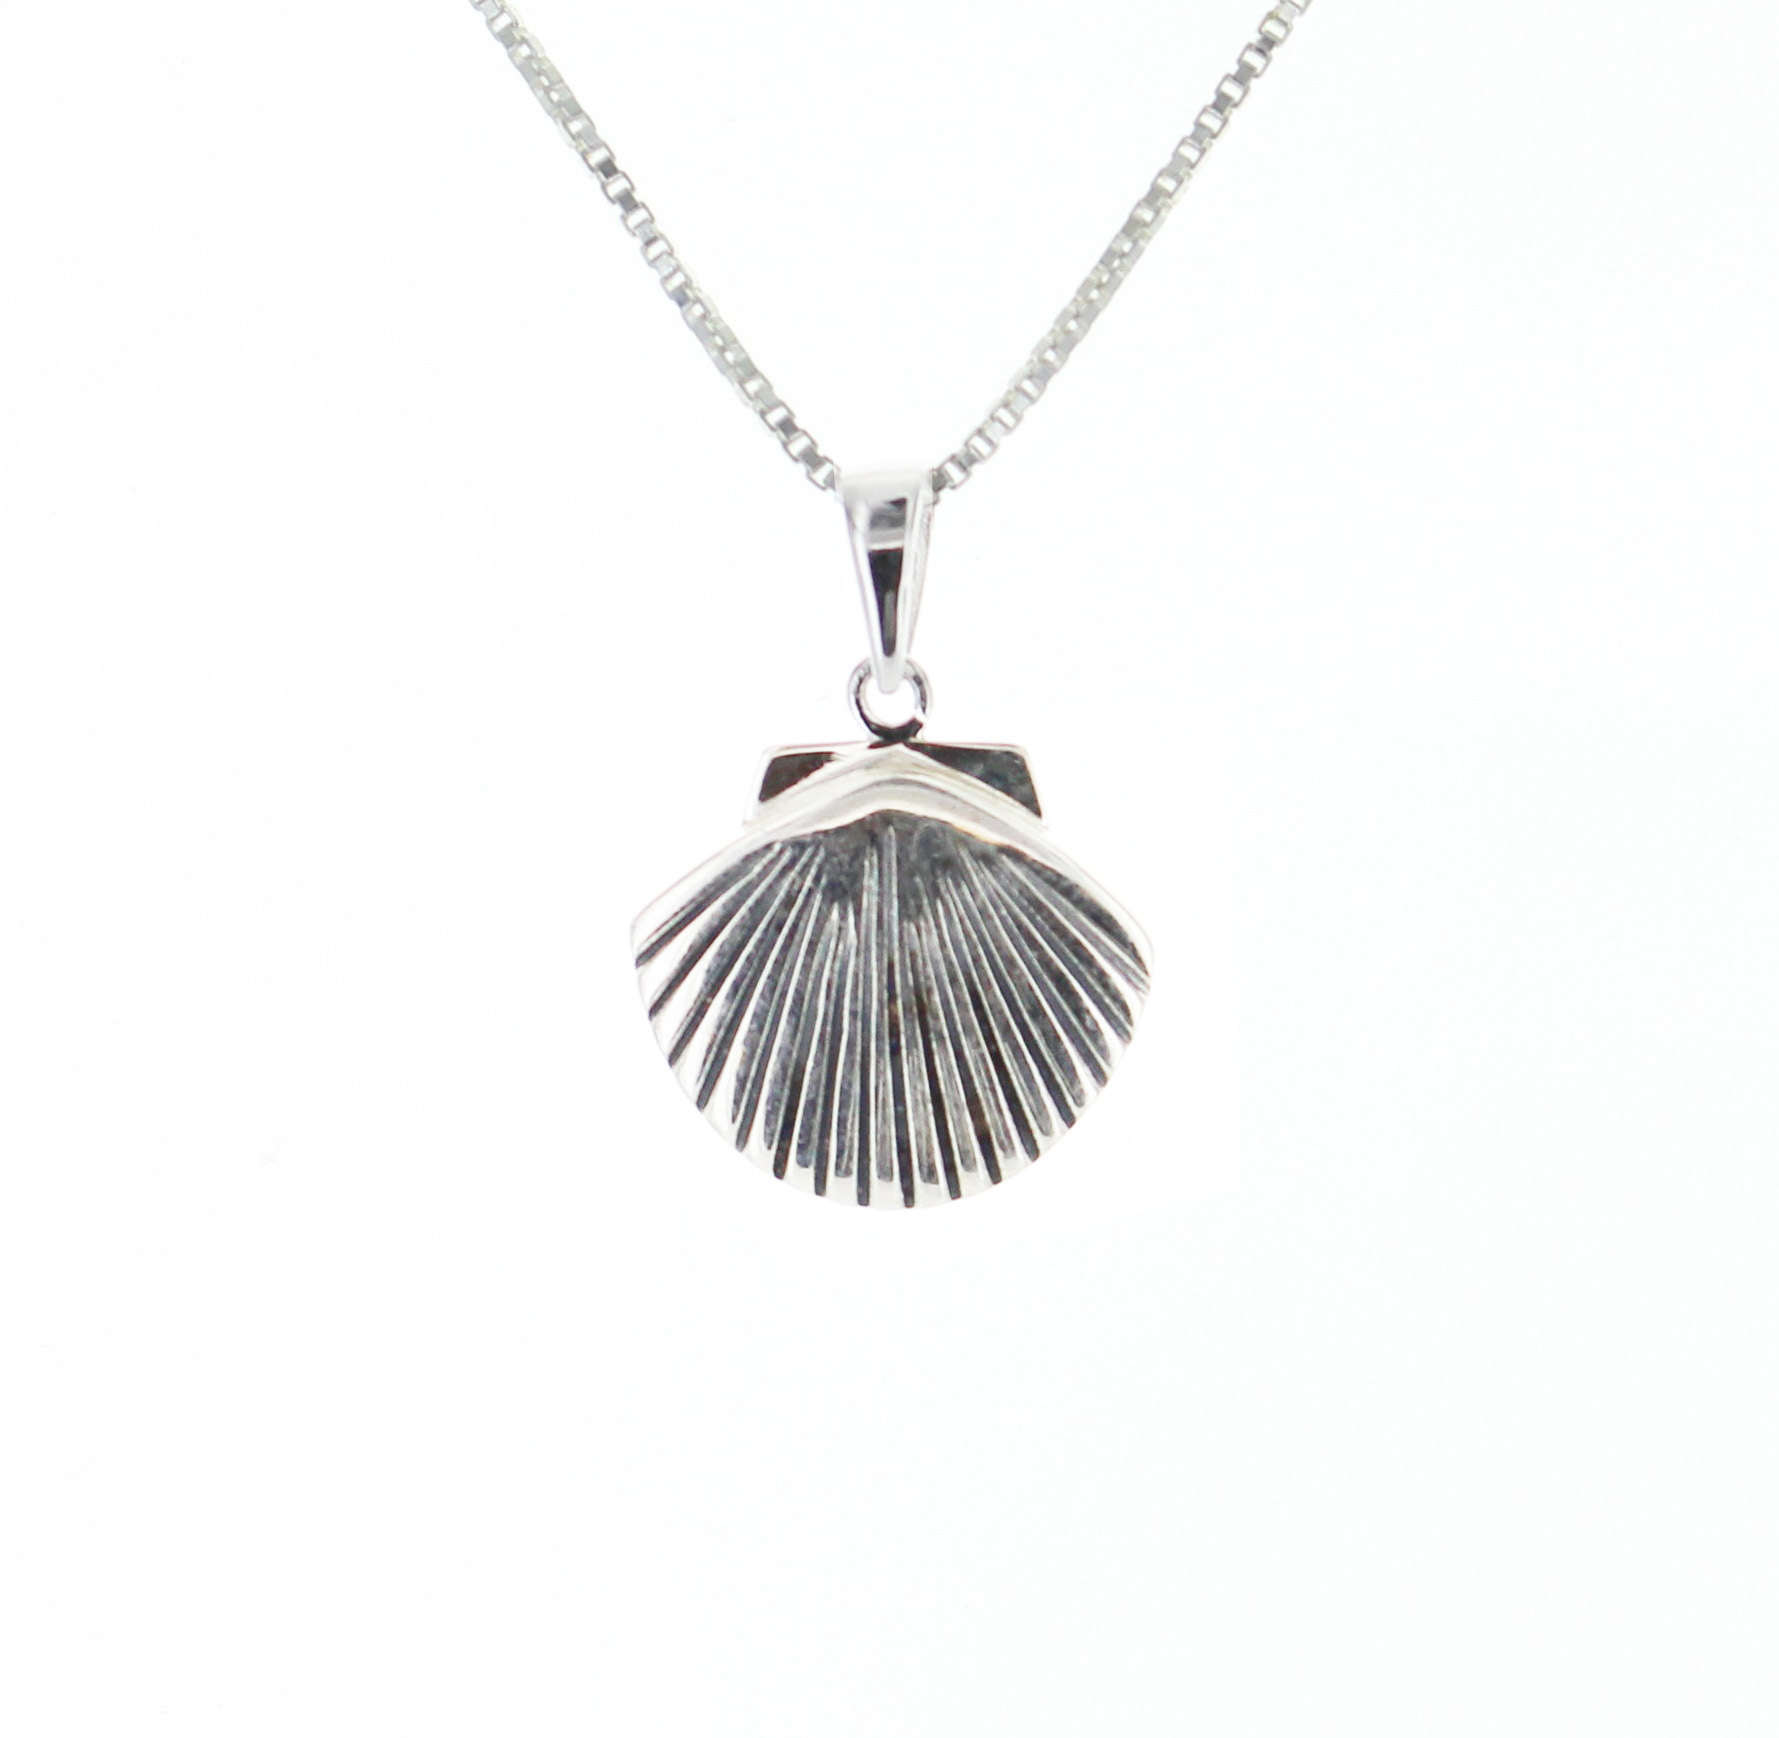 925 Sterling Silver Scallop Shell Pendant